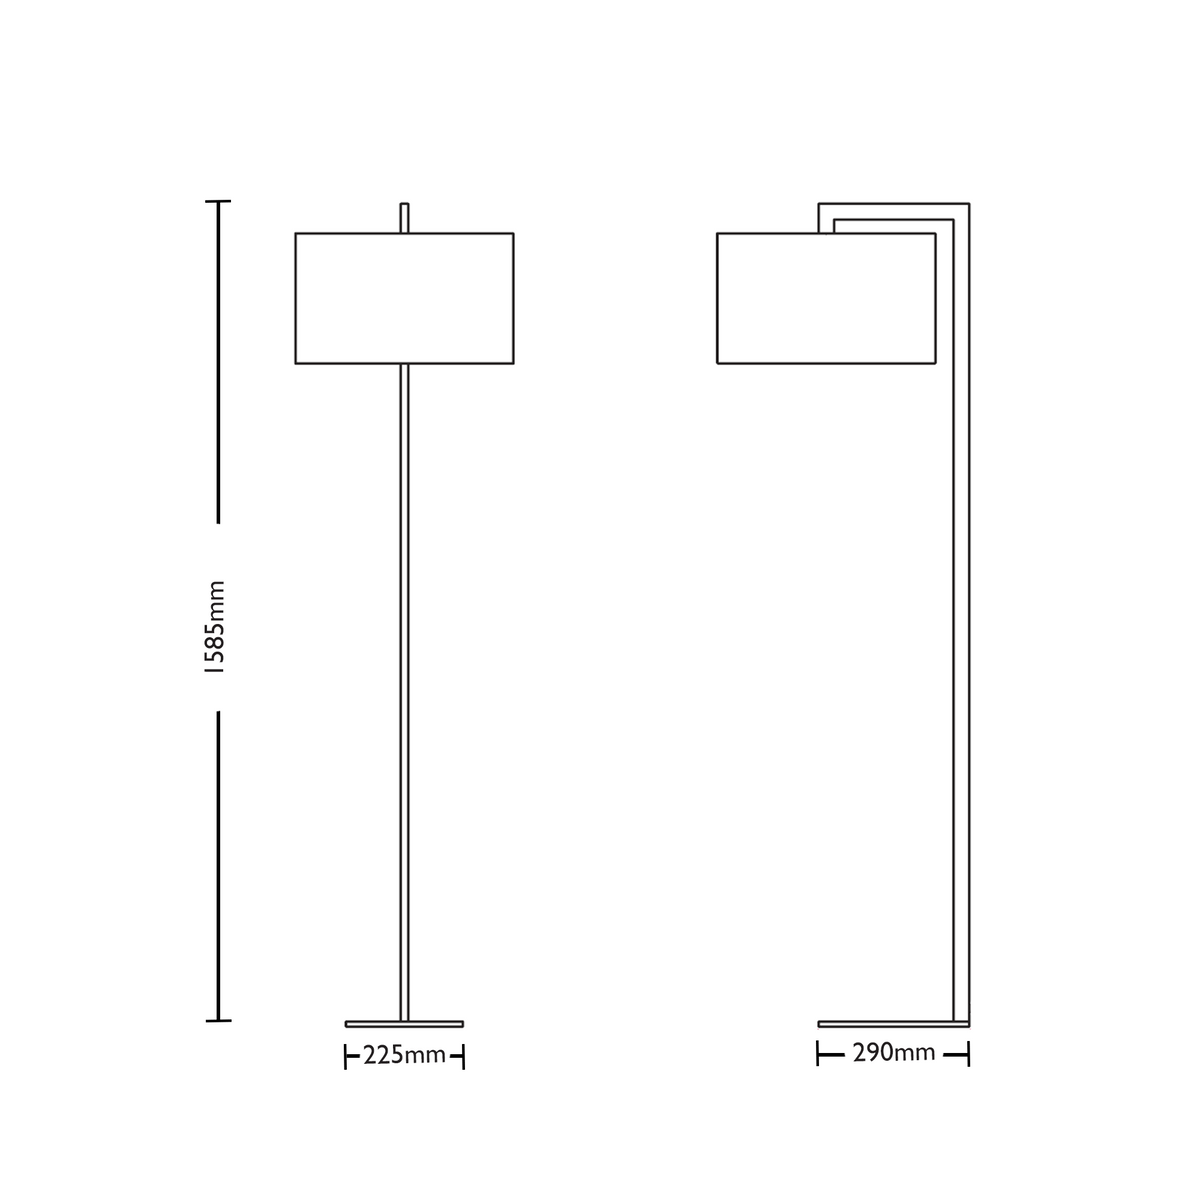 Dimensions for Astro Lighting Office Ravello Floor Lamp